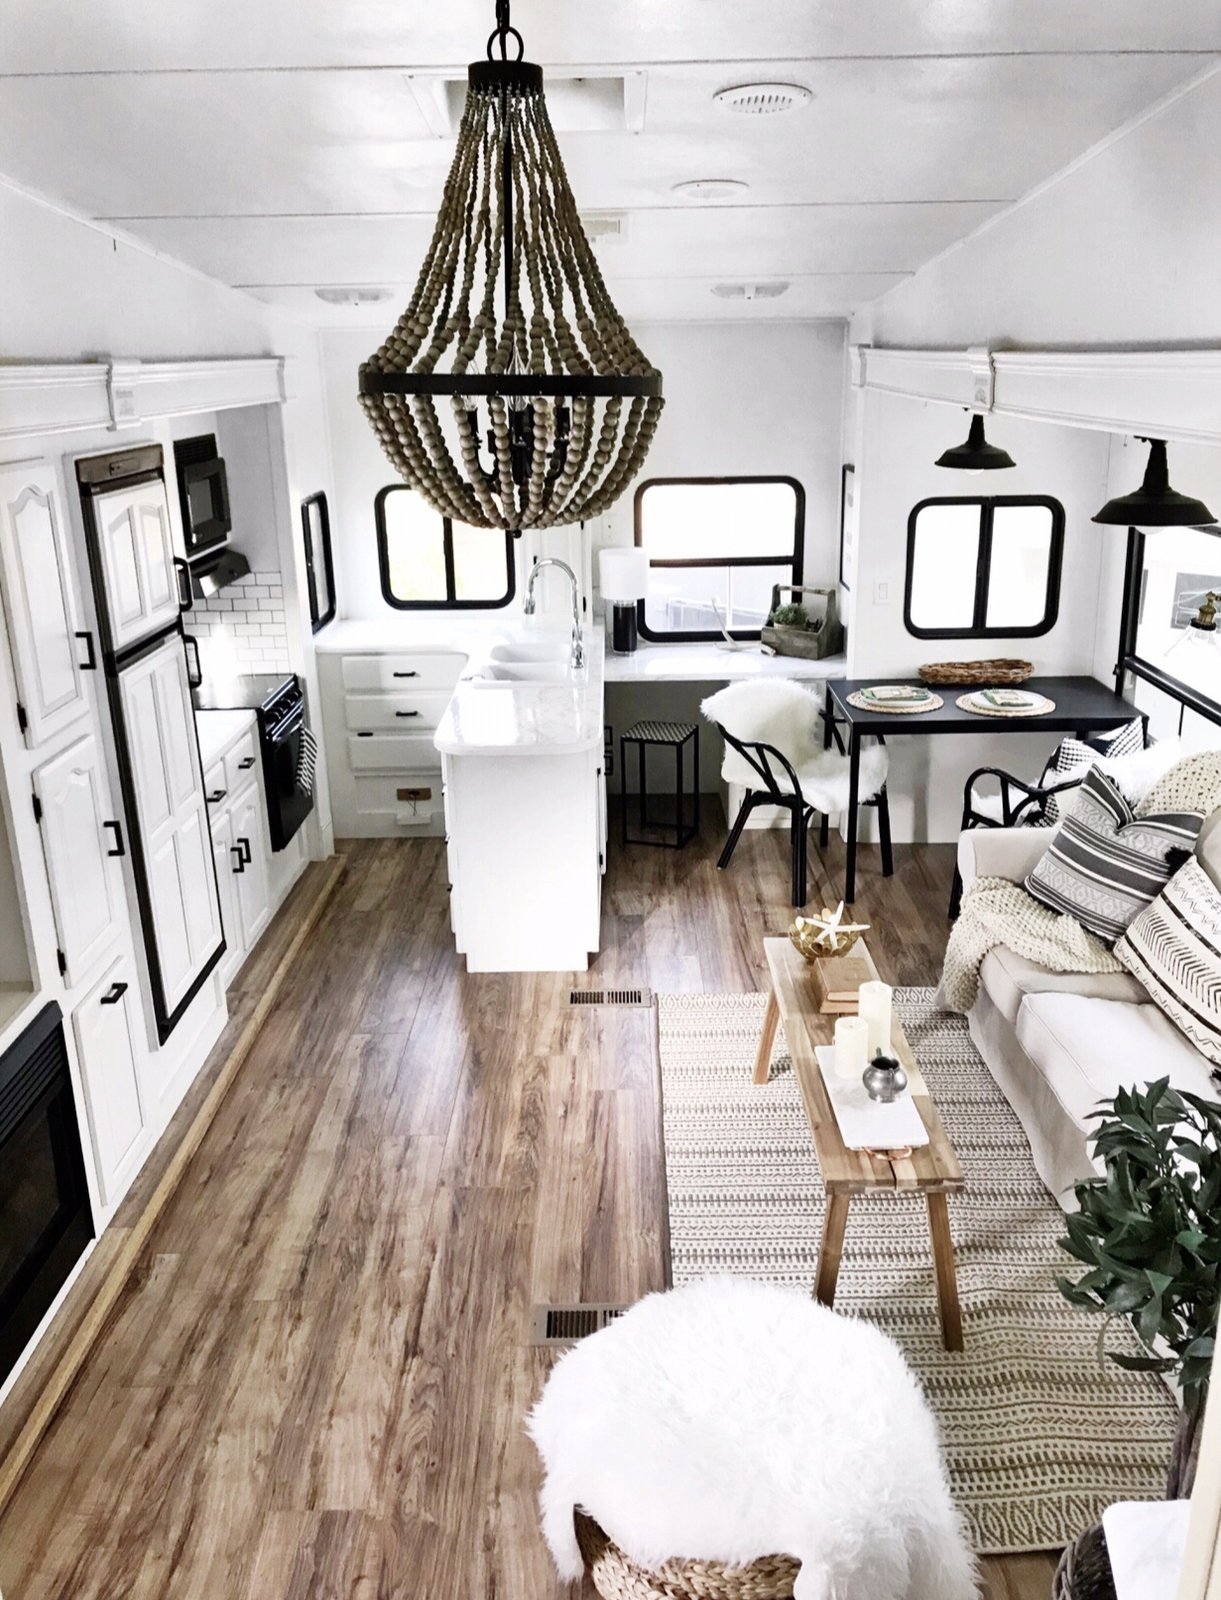 Living Room, Sofa, Medium Hardwood Floor, Table, Pendant Lighting, Storage, Coffee Tables, and Rug Floor Wood details and a simple white and black color scheme give the RV's interior a bright, modern Scandinavian feel.  Photo 1 of 16 in Hit the Road With This Chic Camper on Sale For $28K